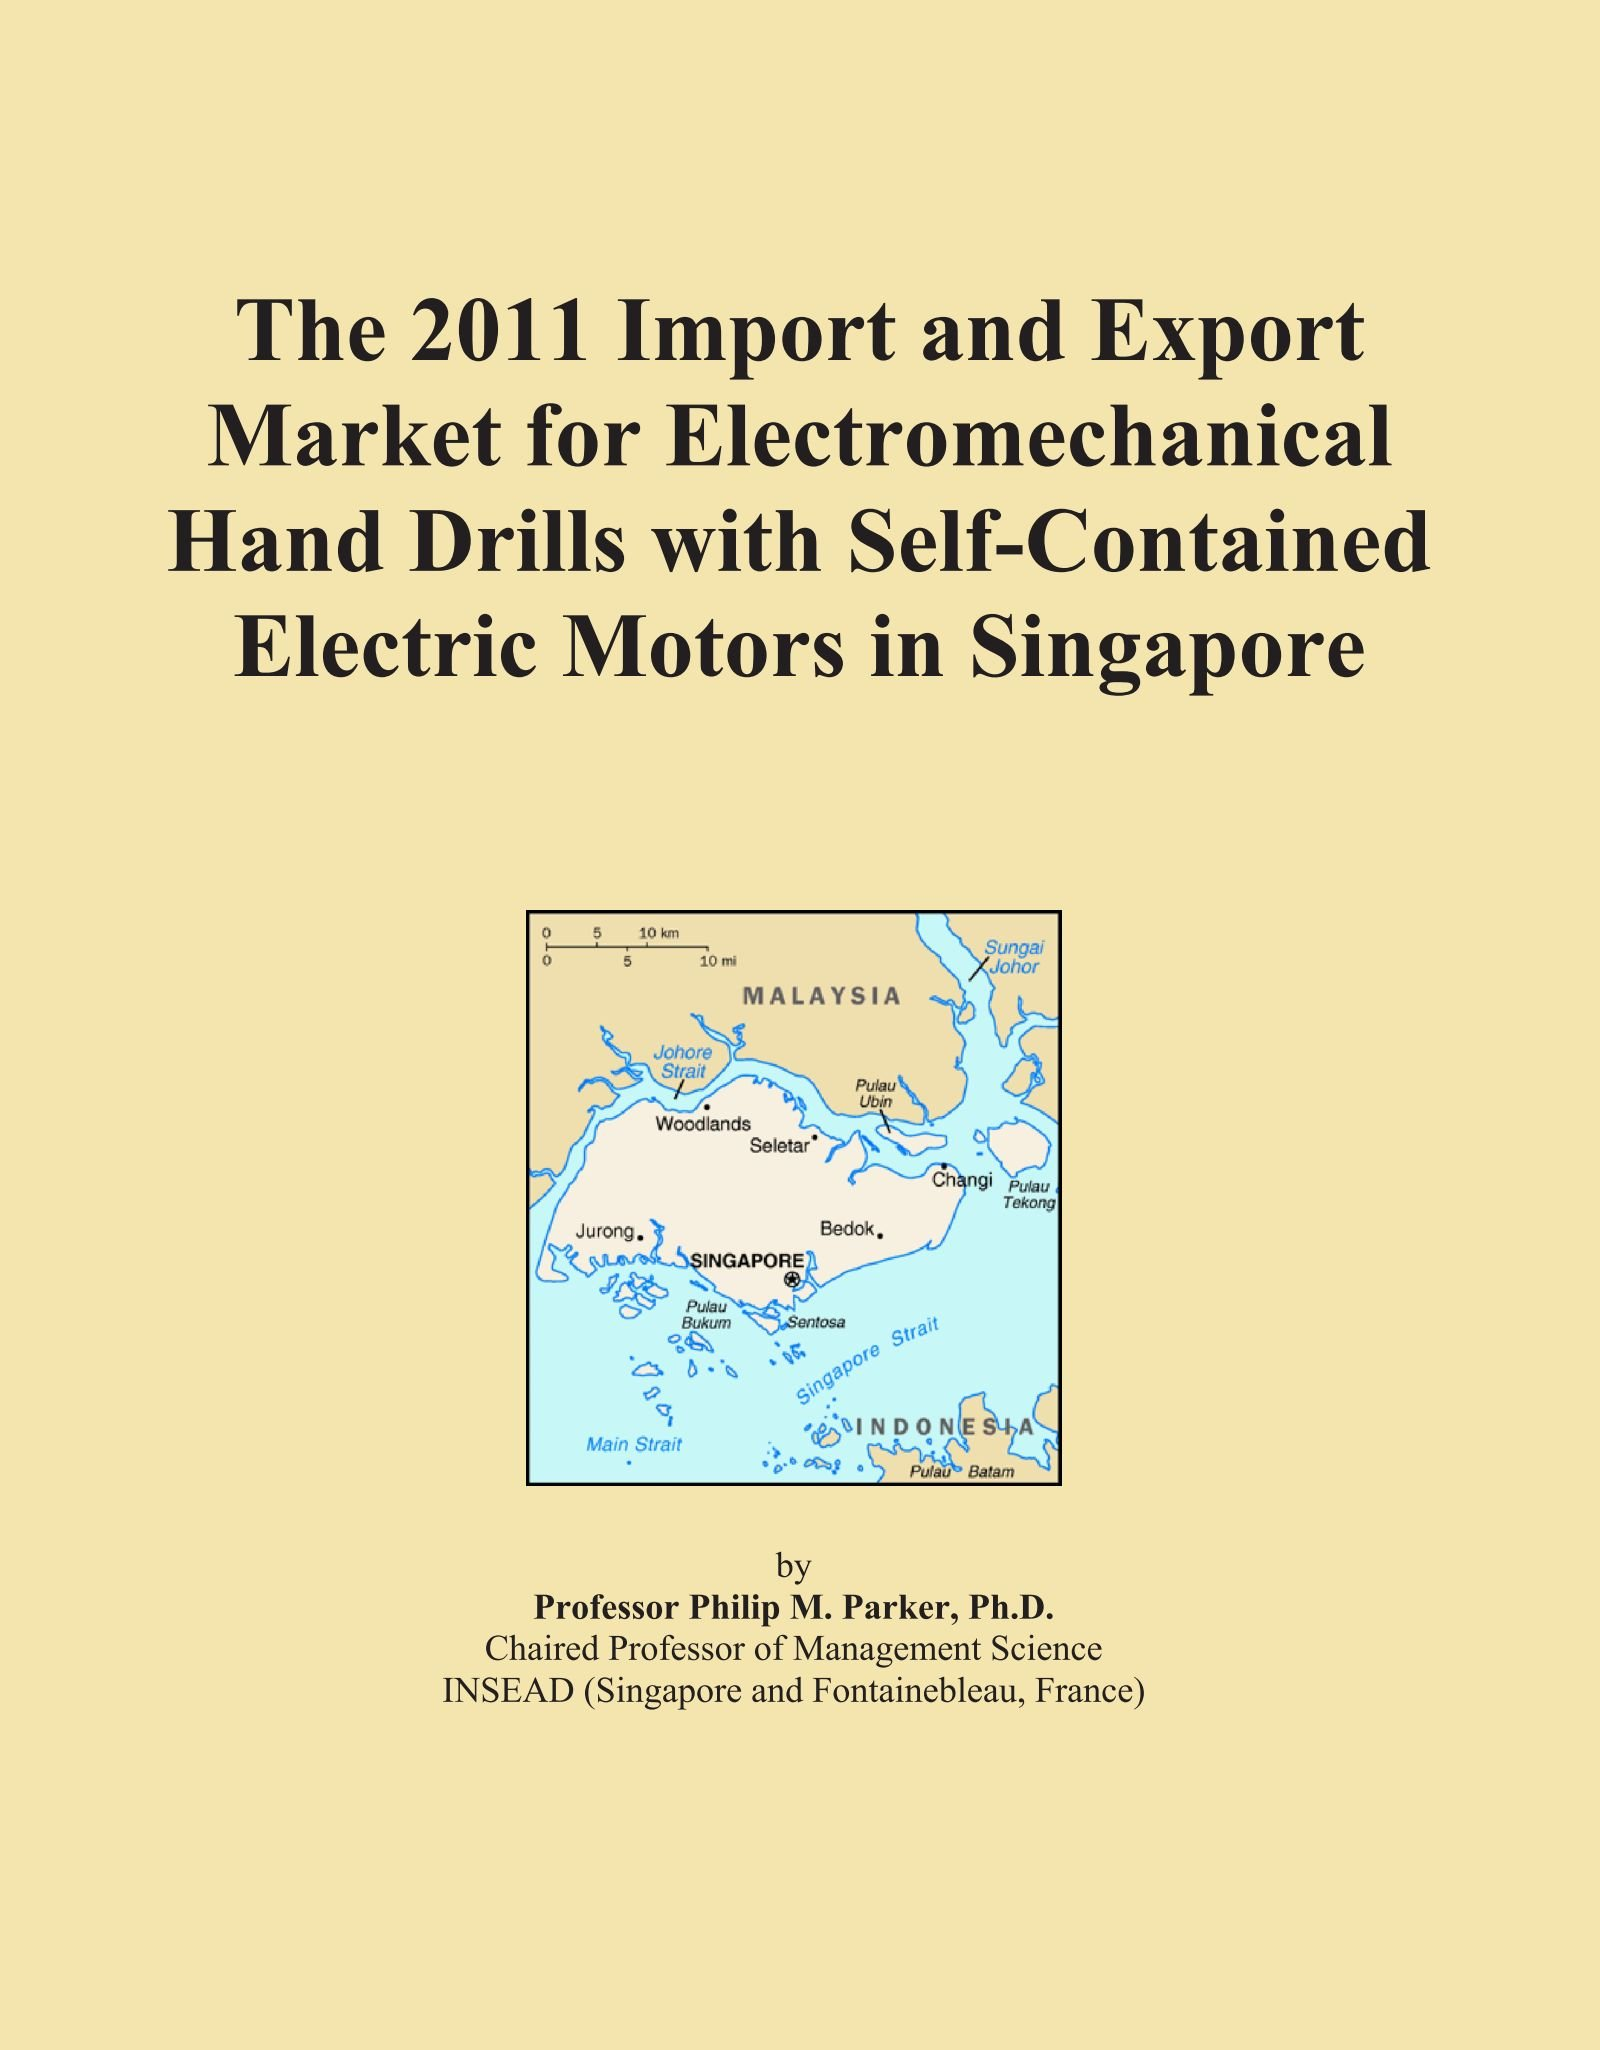 Download The 2011 Import and Export Market for Electromechanical Hand Drills with Self-Contained Electric Motors in Singapore PDF